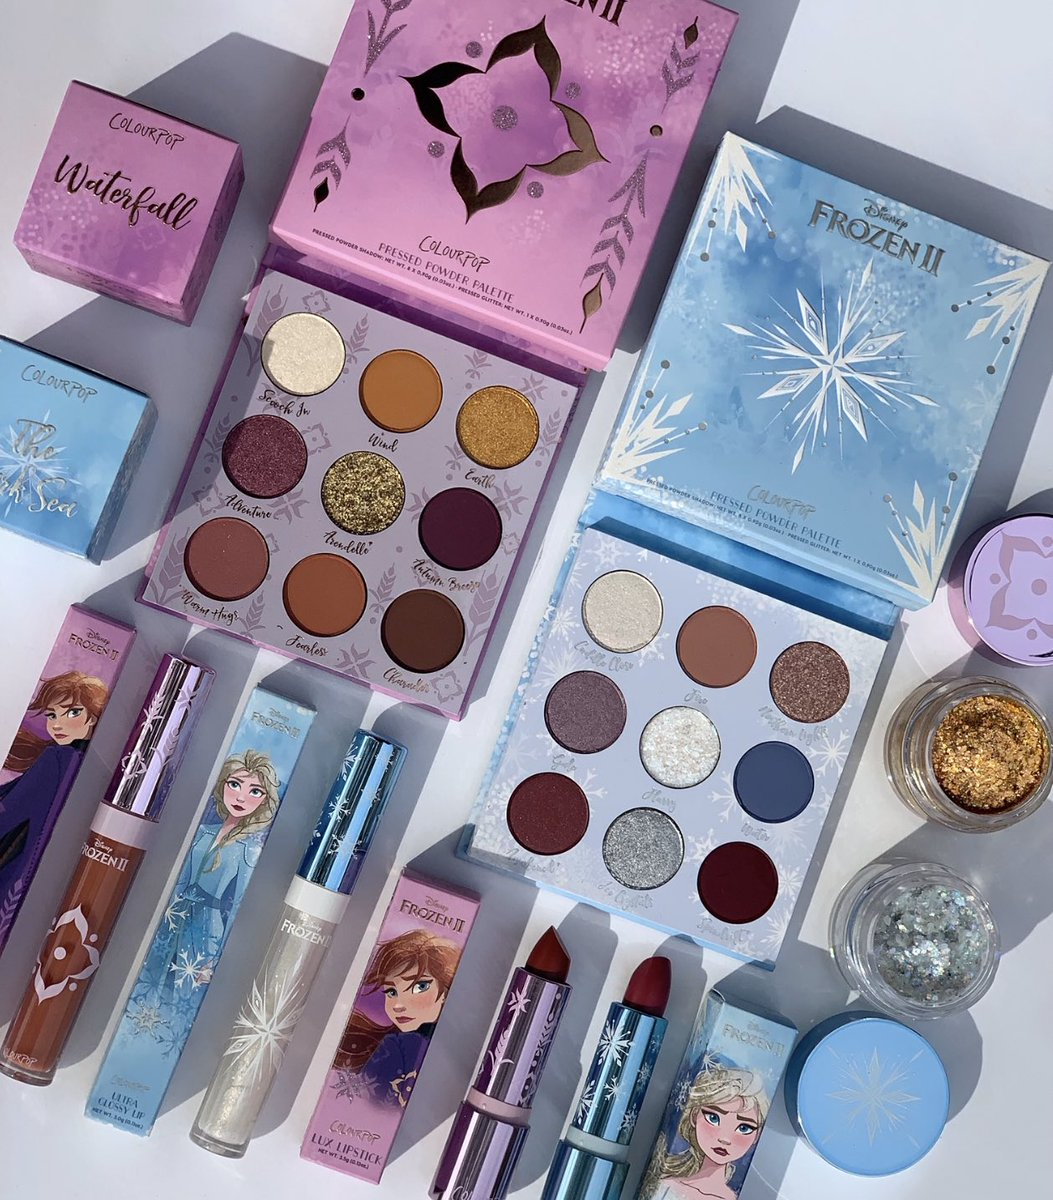 ❄️ #GIVEAWAY ❄️ For the first time in forever, we are giving away the complete Frozen 2 collection to 2 lucky winners! To Enter: ❄️: Like & RT ❄️: Follow @ColourPopCo ❄️: Reply #frozen2andcolourpop